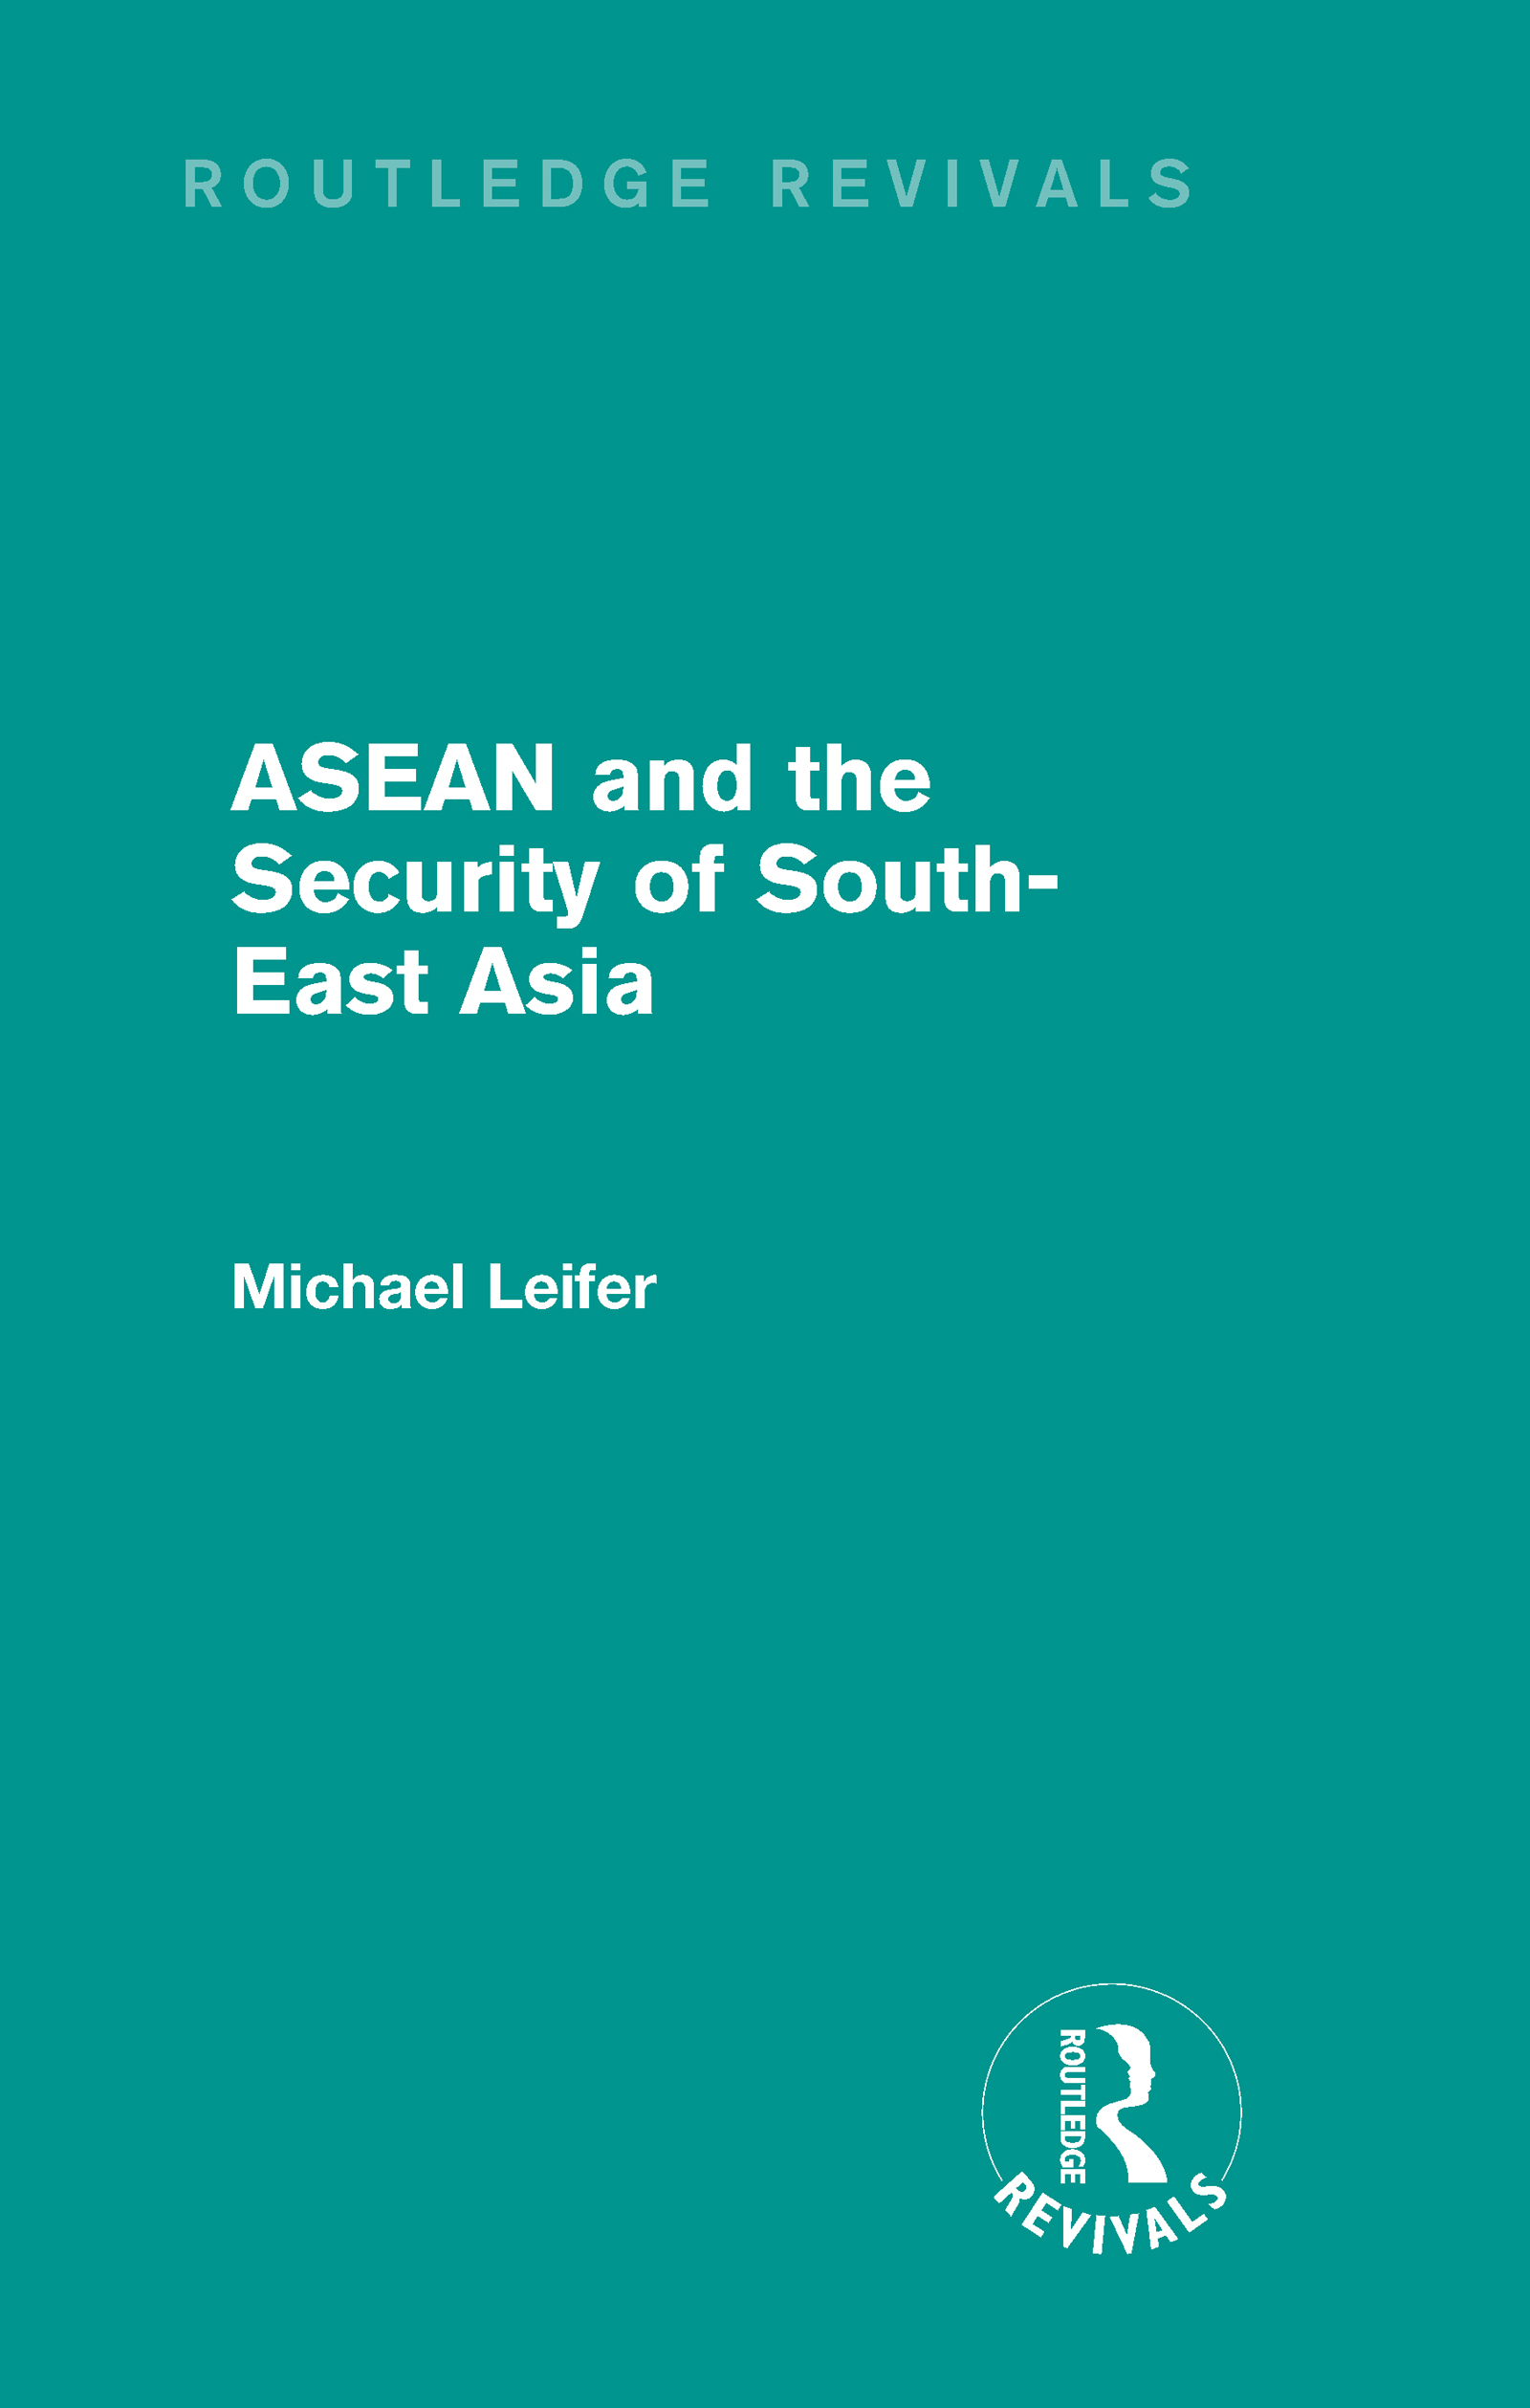 ASEAN and the Security of South-East Asia (Routledge Revivals) (Hardback) book cover